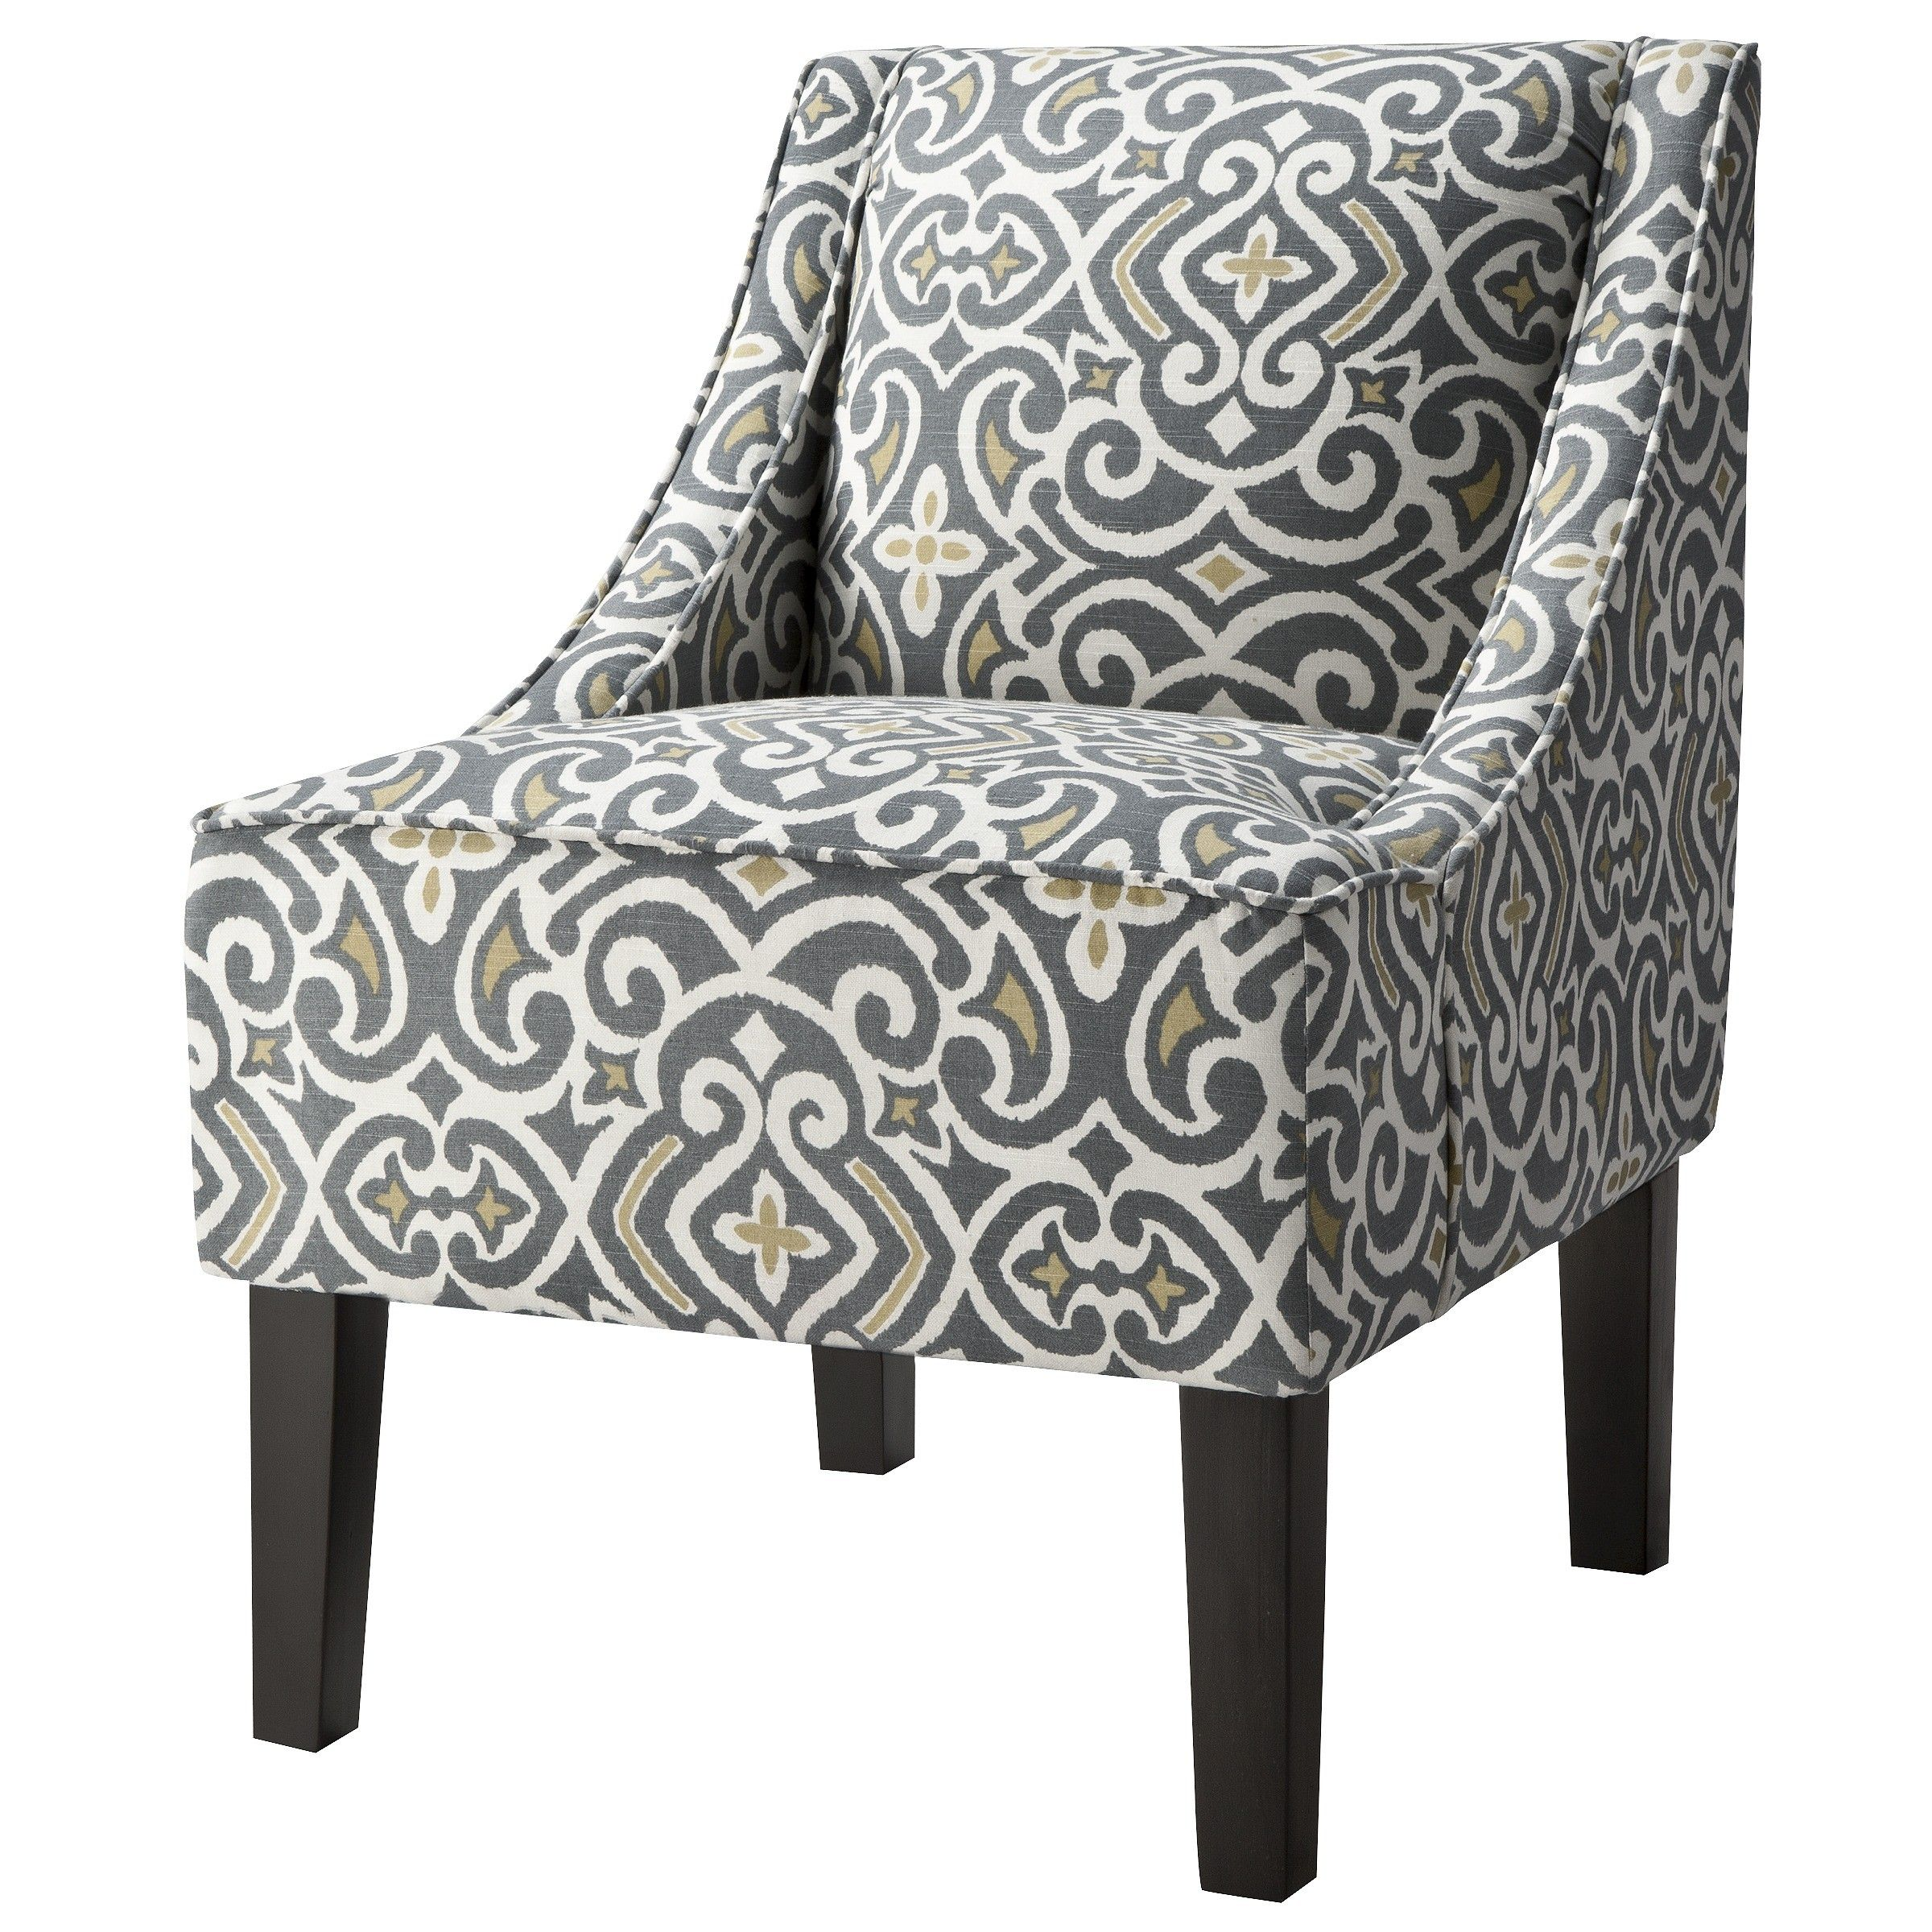 Target Accent Chairs Ikea Tempe Chair Covers Hudson Swoop Prints Greystone Print Our